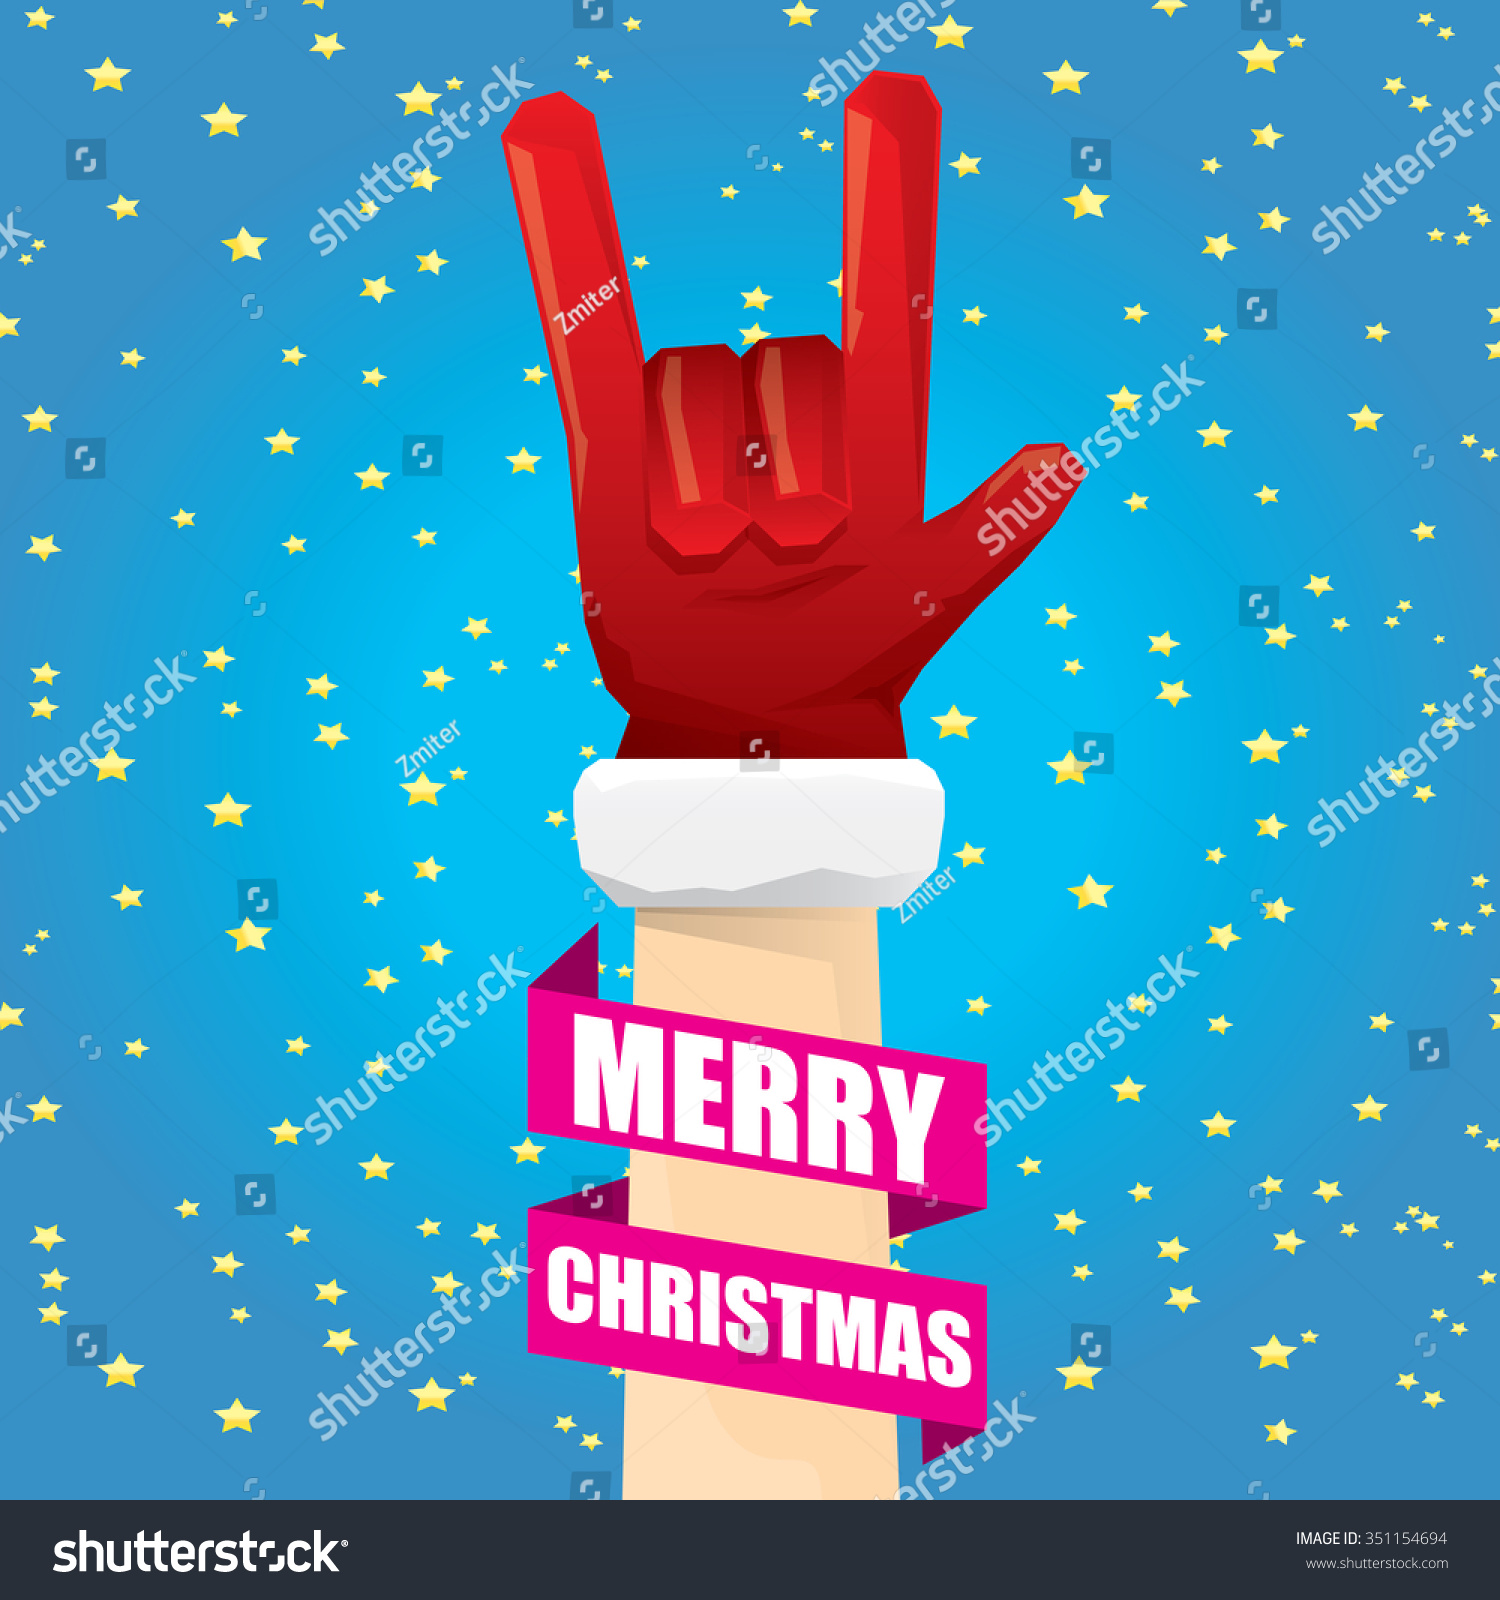 Rock n roll poster design - Santa Claus Hand Rock N Roll Icon Vector Illustration Christmas Rock N Roll Concert Poster